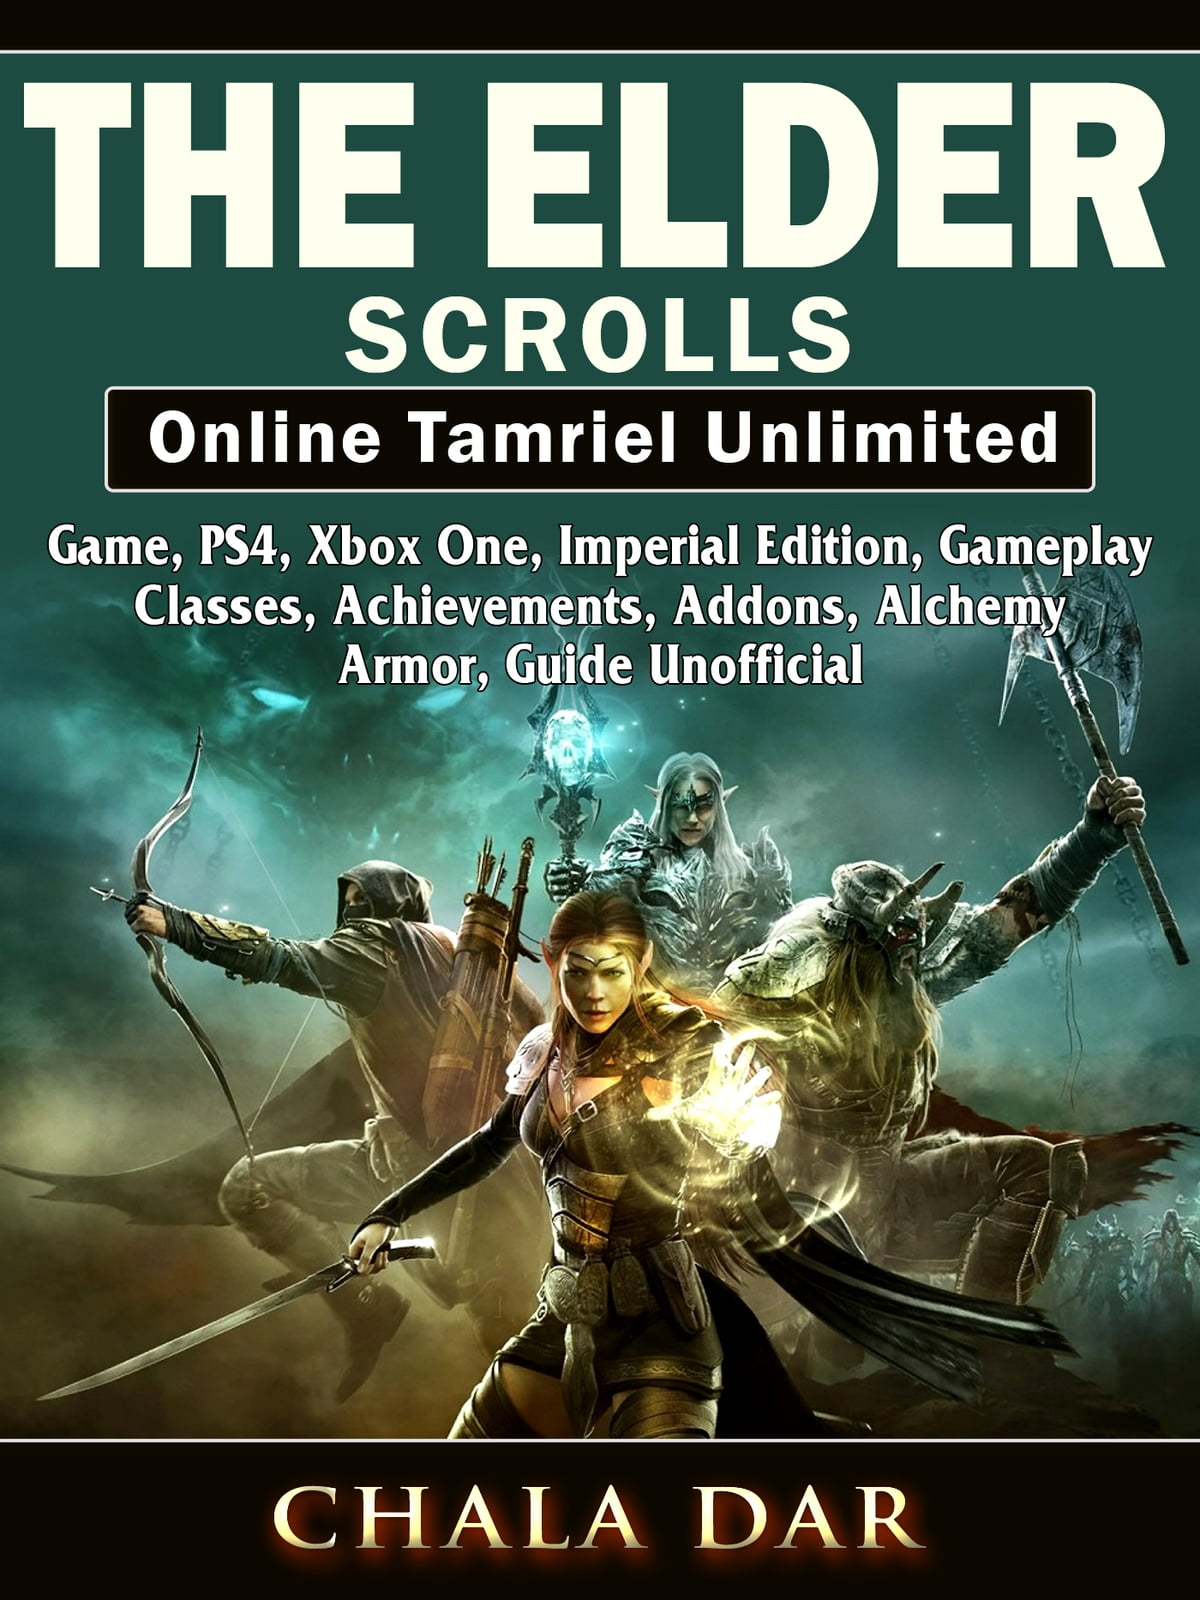 The Elder Scrolls Online Tamriel Unlimited Game Ps4 Xbox One Imperial Edition Gameplay Classes Achievements Addons Alchemy Armor Guide Unofficial Ebook By Chala Dar 9781387965151 Rakuten Kobo United States